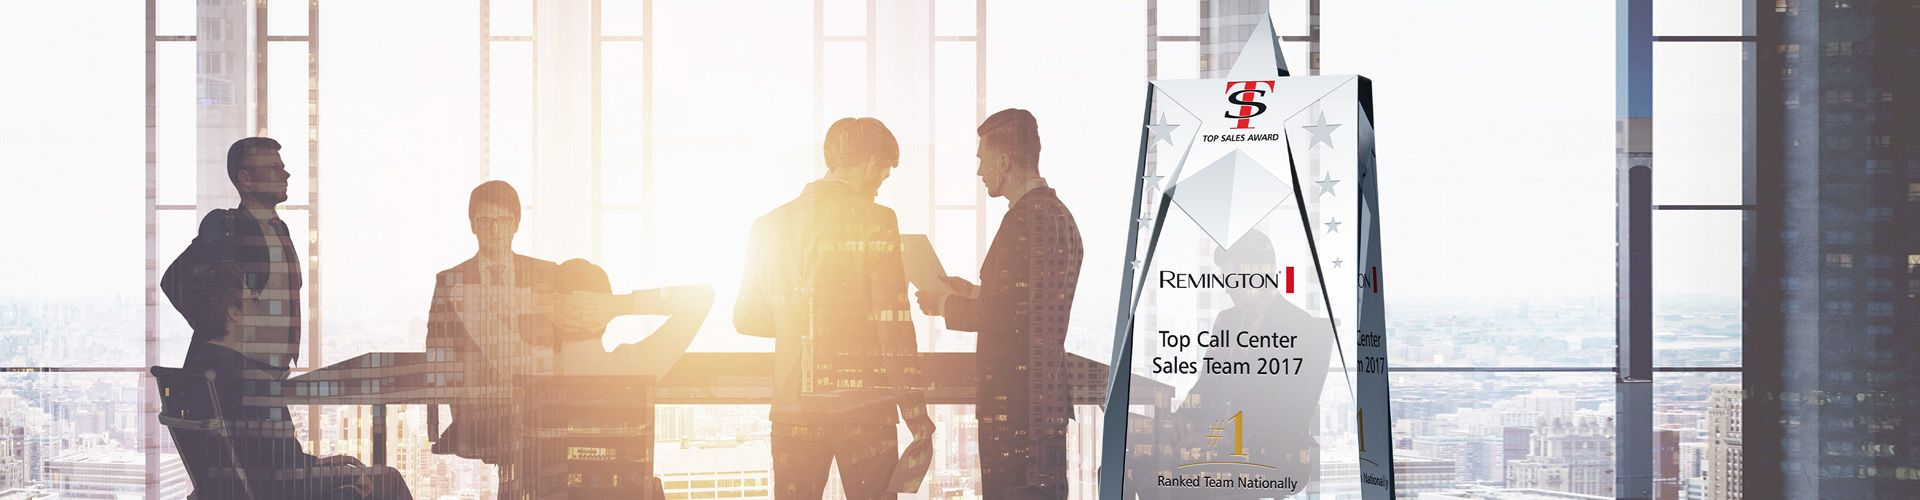 Top Sales Awards Plaques for Salesperson - Banner 1